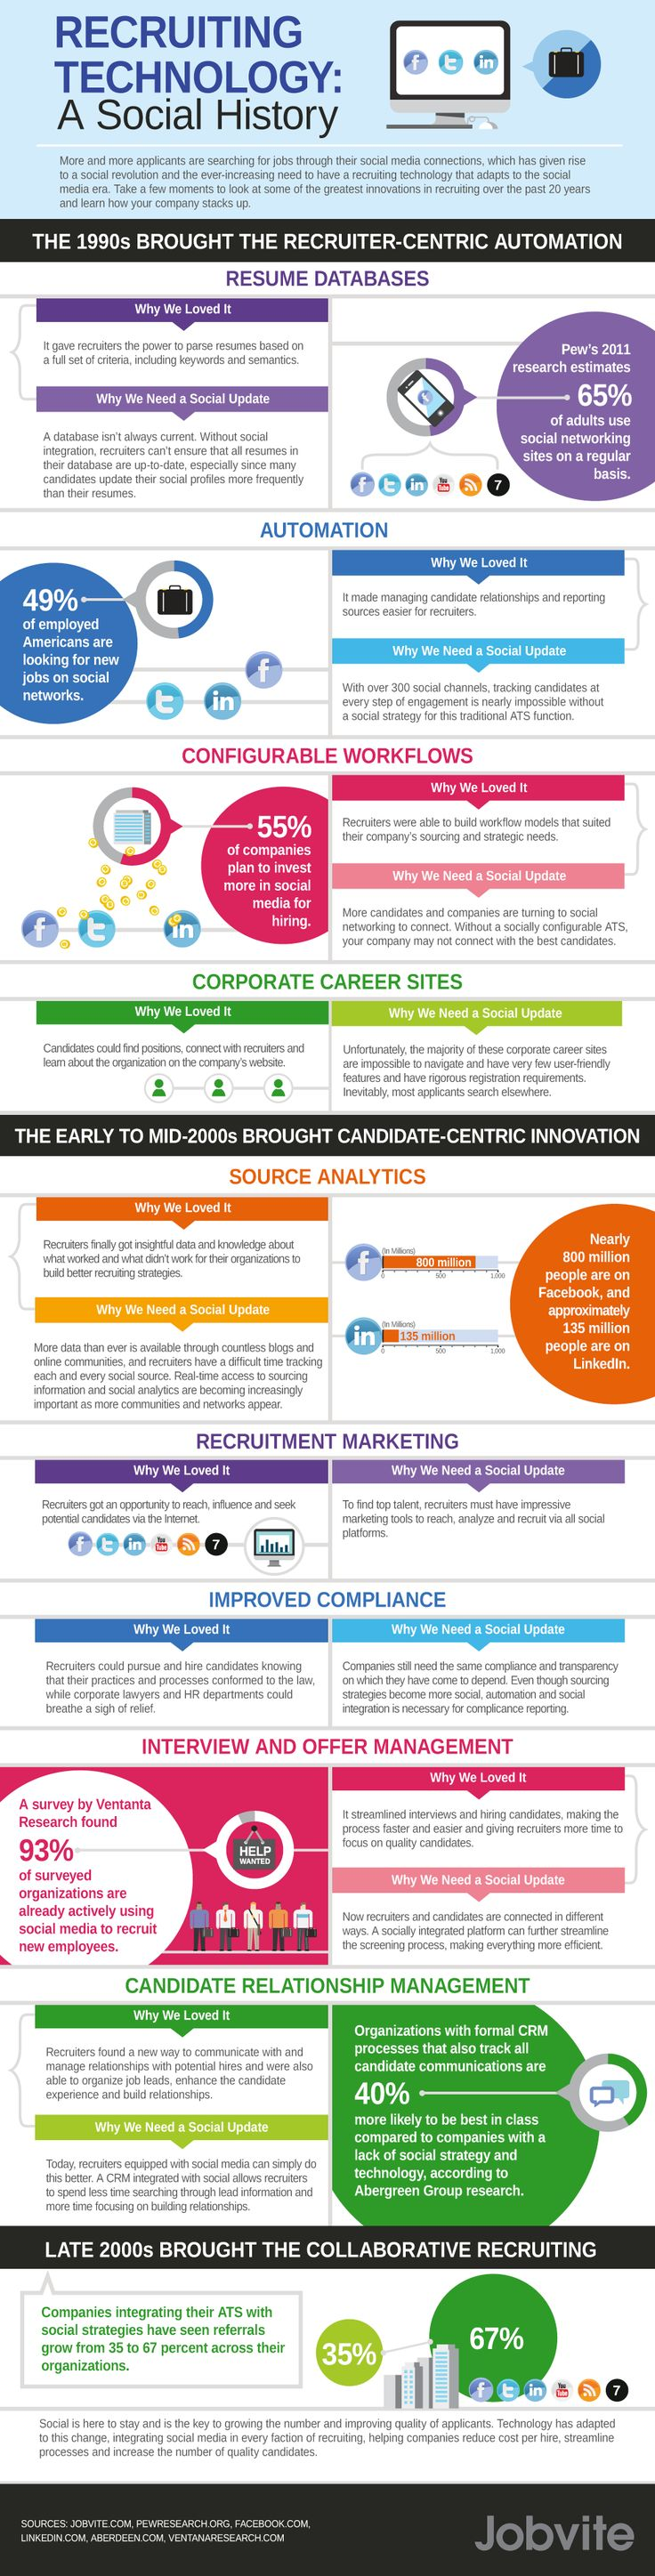 The History of Social Recruiting Technology.    Digital recruiting has certainly come a long way in such a short time. Since the dawn of the computerized job process, quick and simple strides have been made in recruiting that have ultimately produced a major impact on how employers find young talent with the right skills.